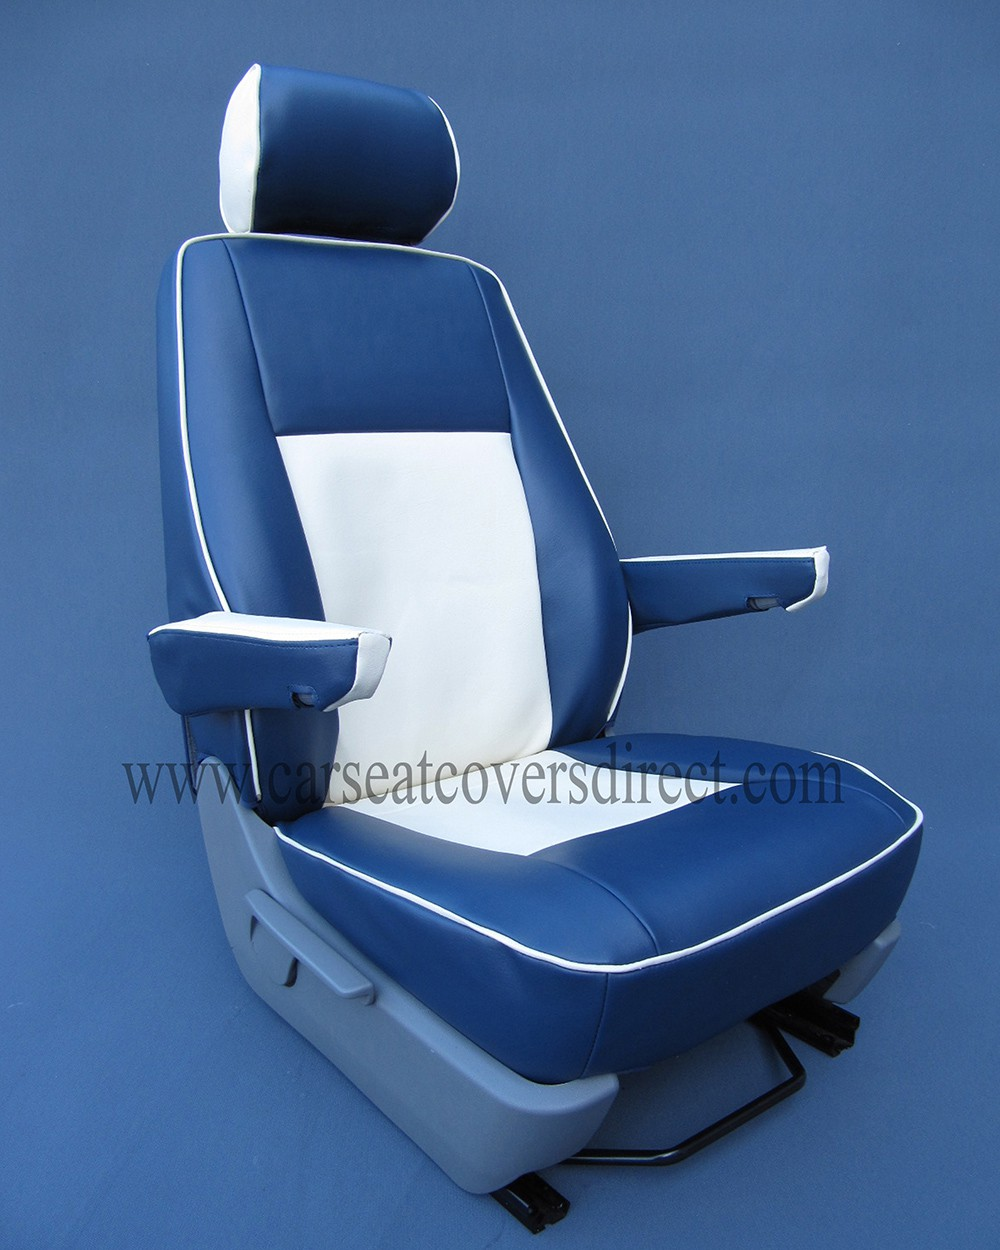 VOLKSWAGEN VW Transporter T5 Blue and White Seat Covers